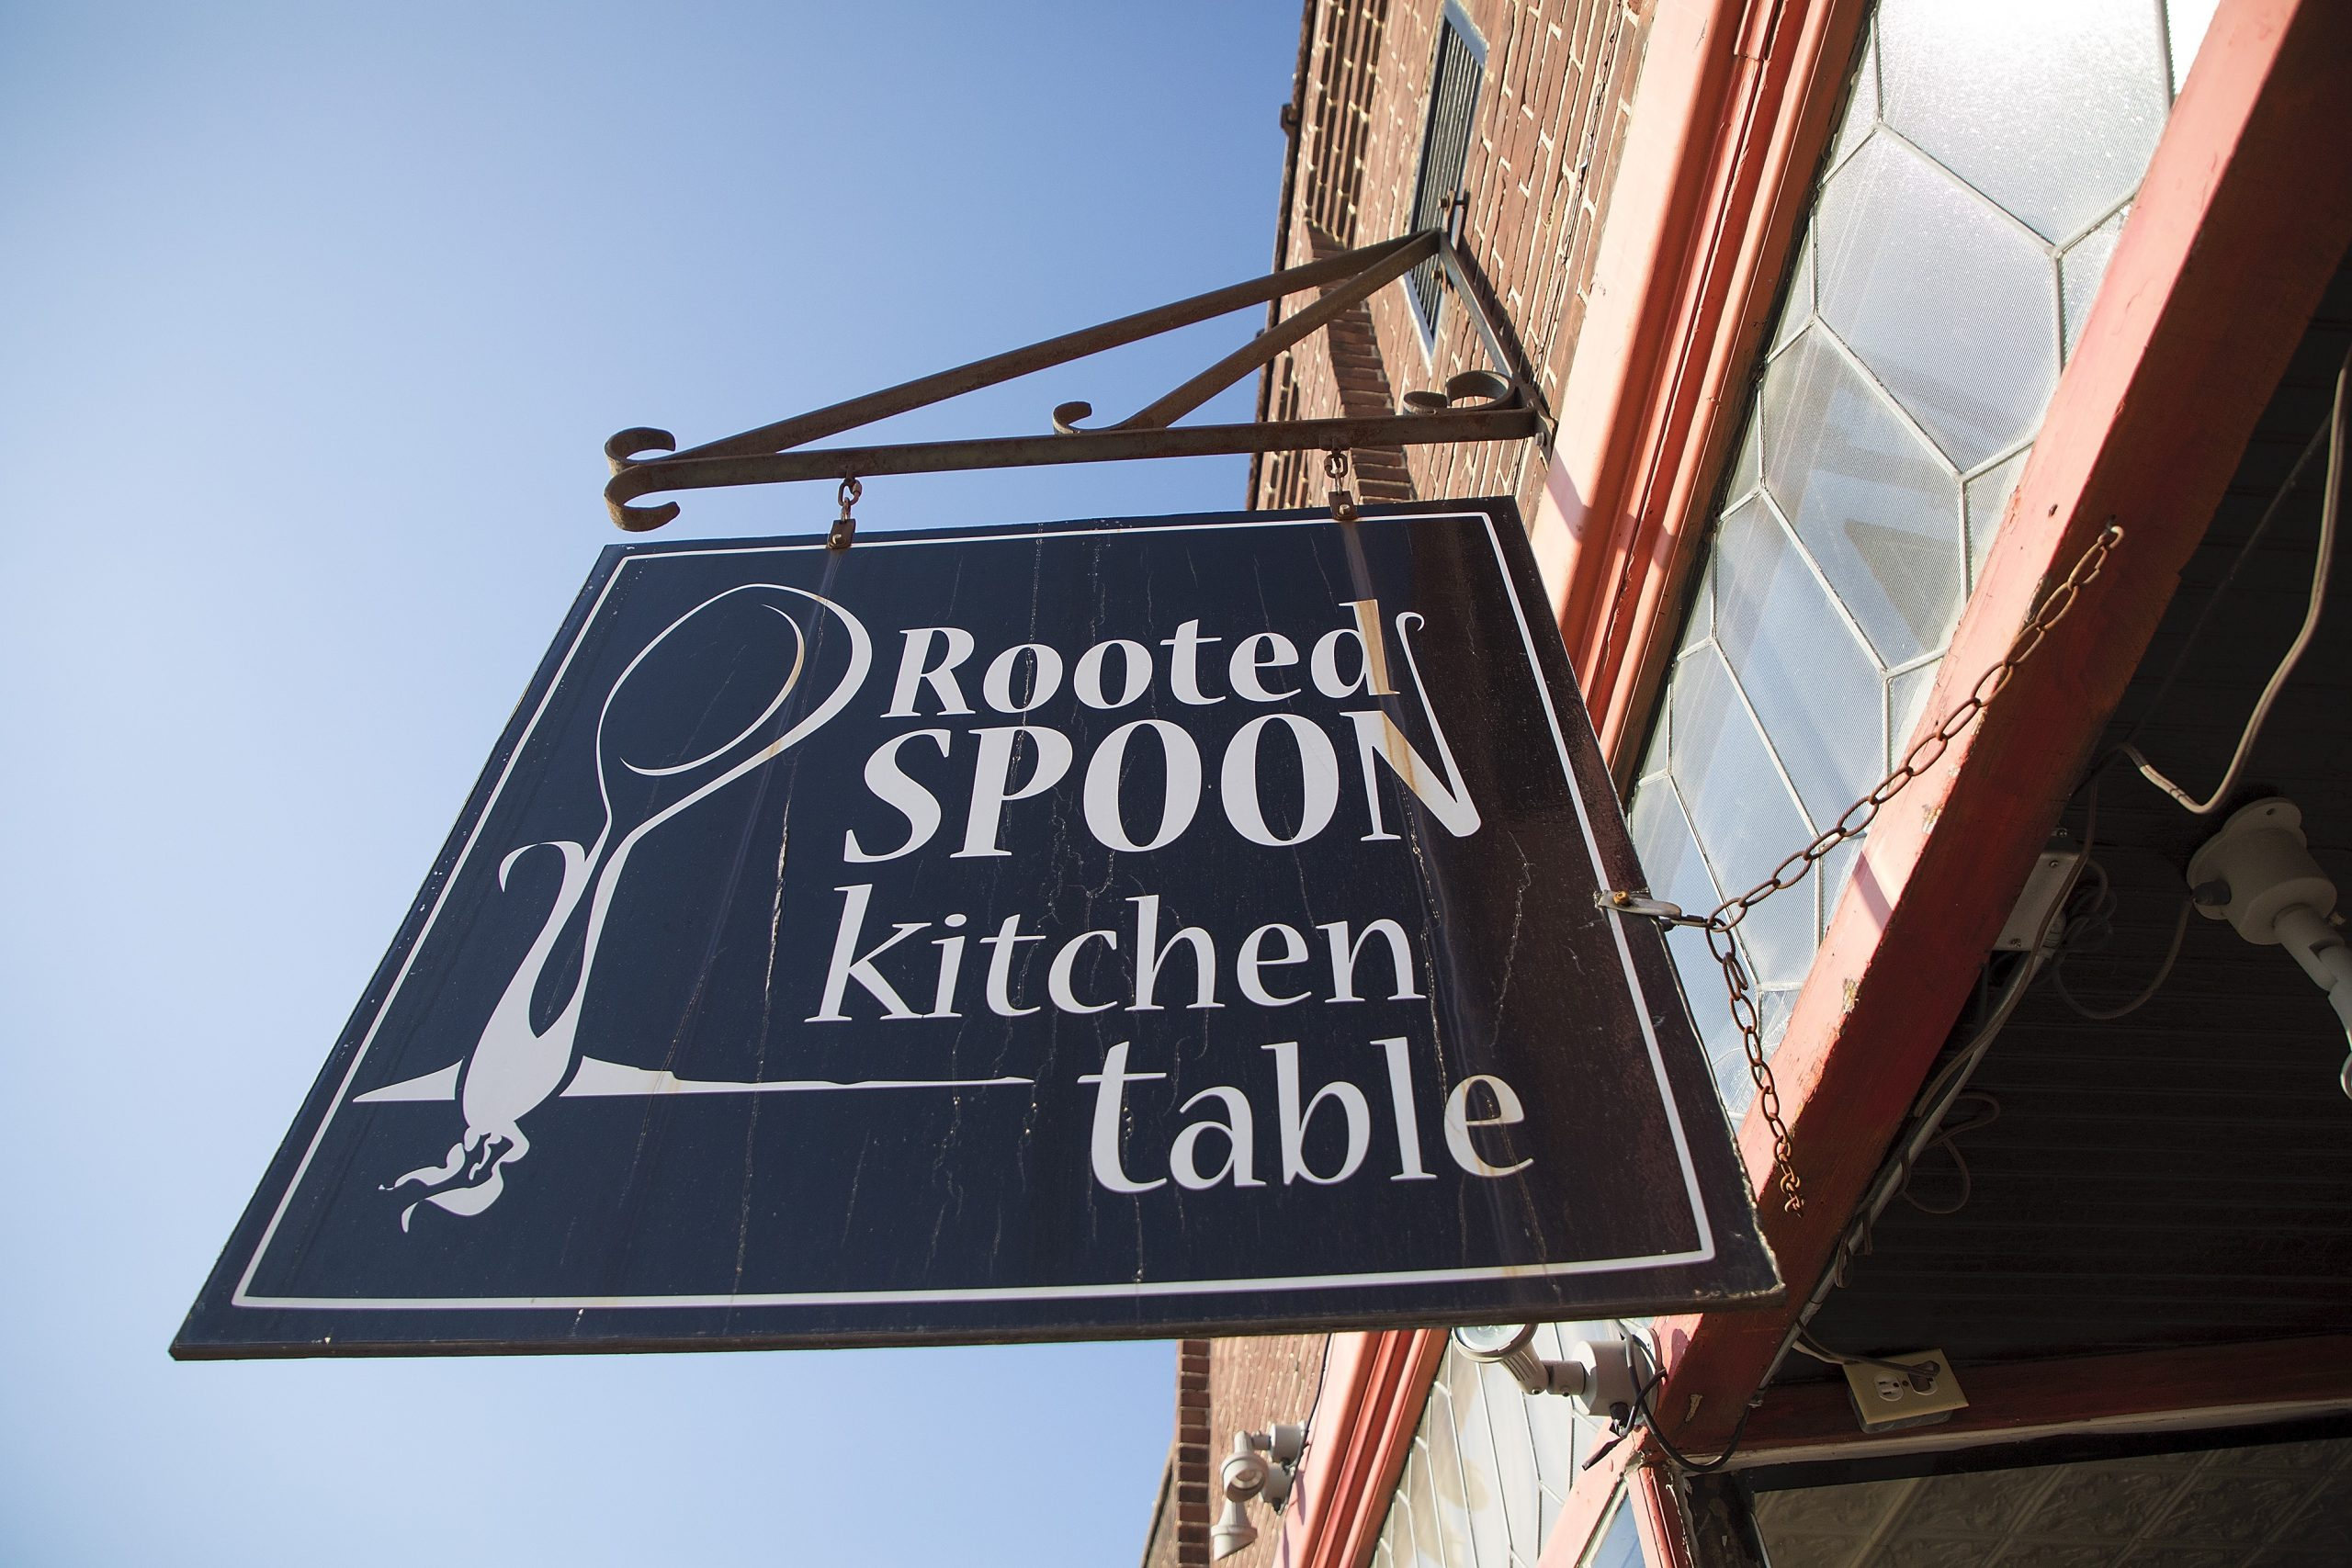 Rooted Spoon Kitchen Table, established in 2010, is located on Main Street, in Viroqua, Wisconsin, and was a destination of the Wisconsin Idea Seminar in 2017 and in 2019. (Photo by Hyunsoo Léo Kim/UW-Madison)